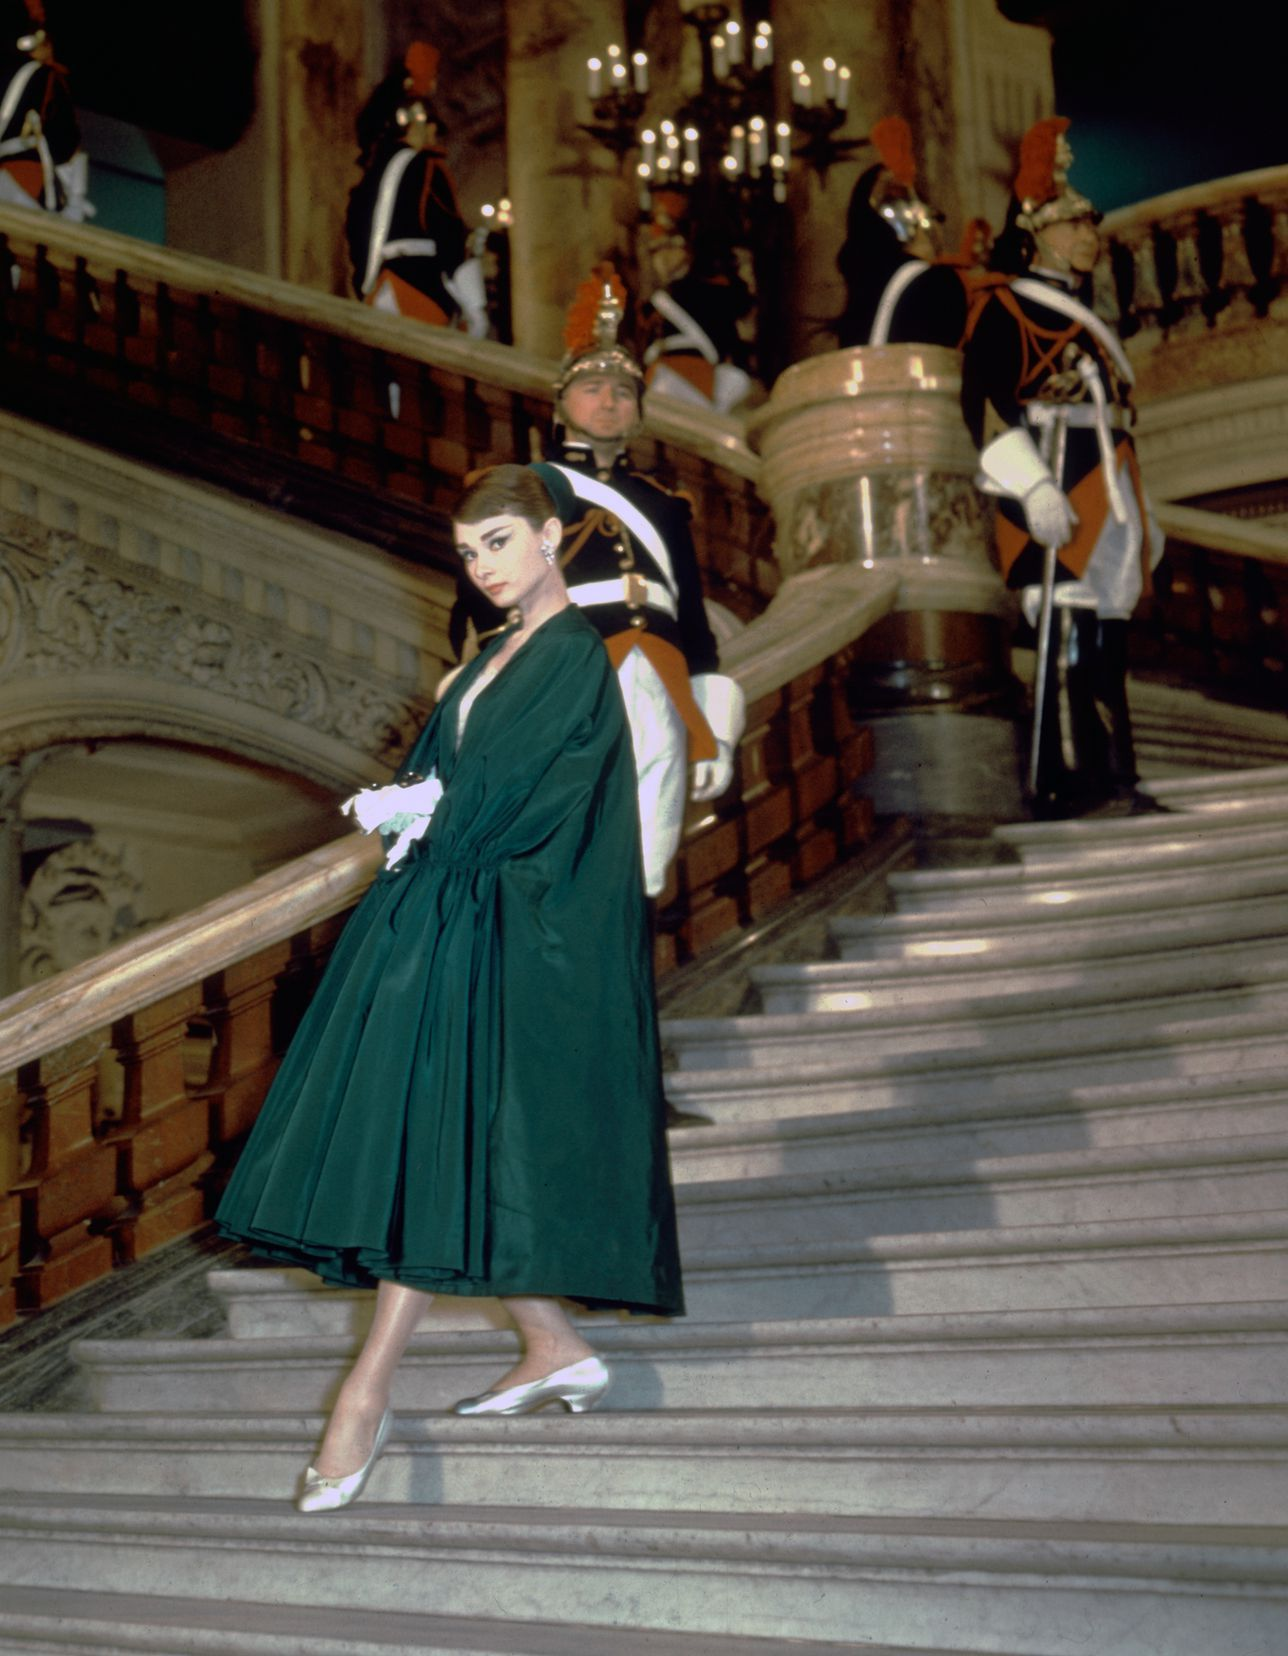 Audrey Hepburn S Best Givenchy Style Moments Audrey Hepburn Givenchy Audrey Hepburn Audrey Hepburn Funny Face